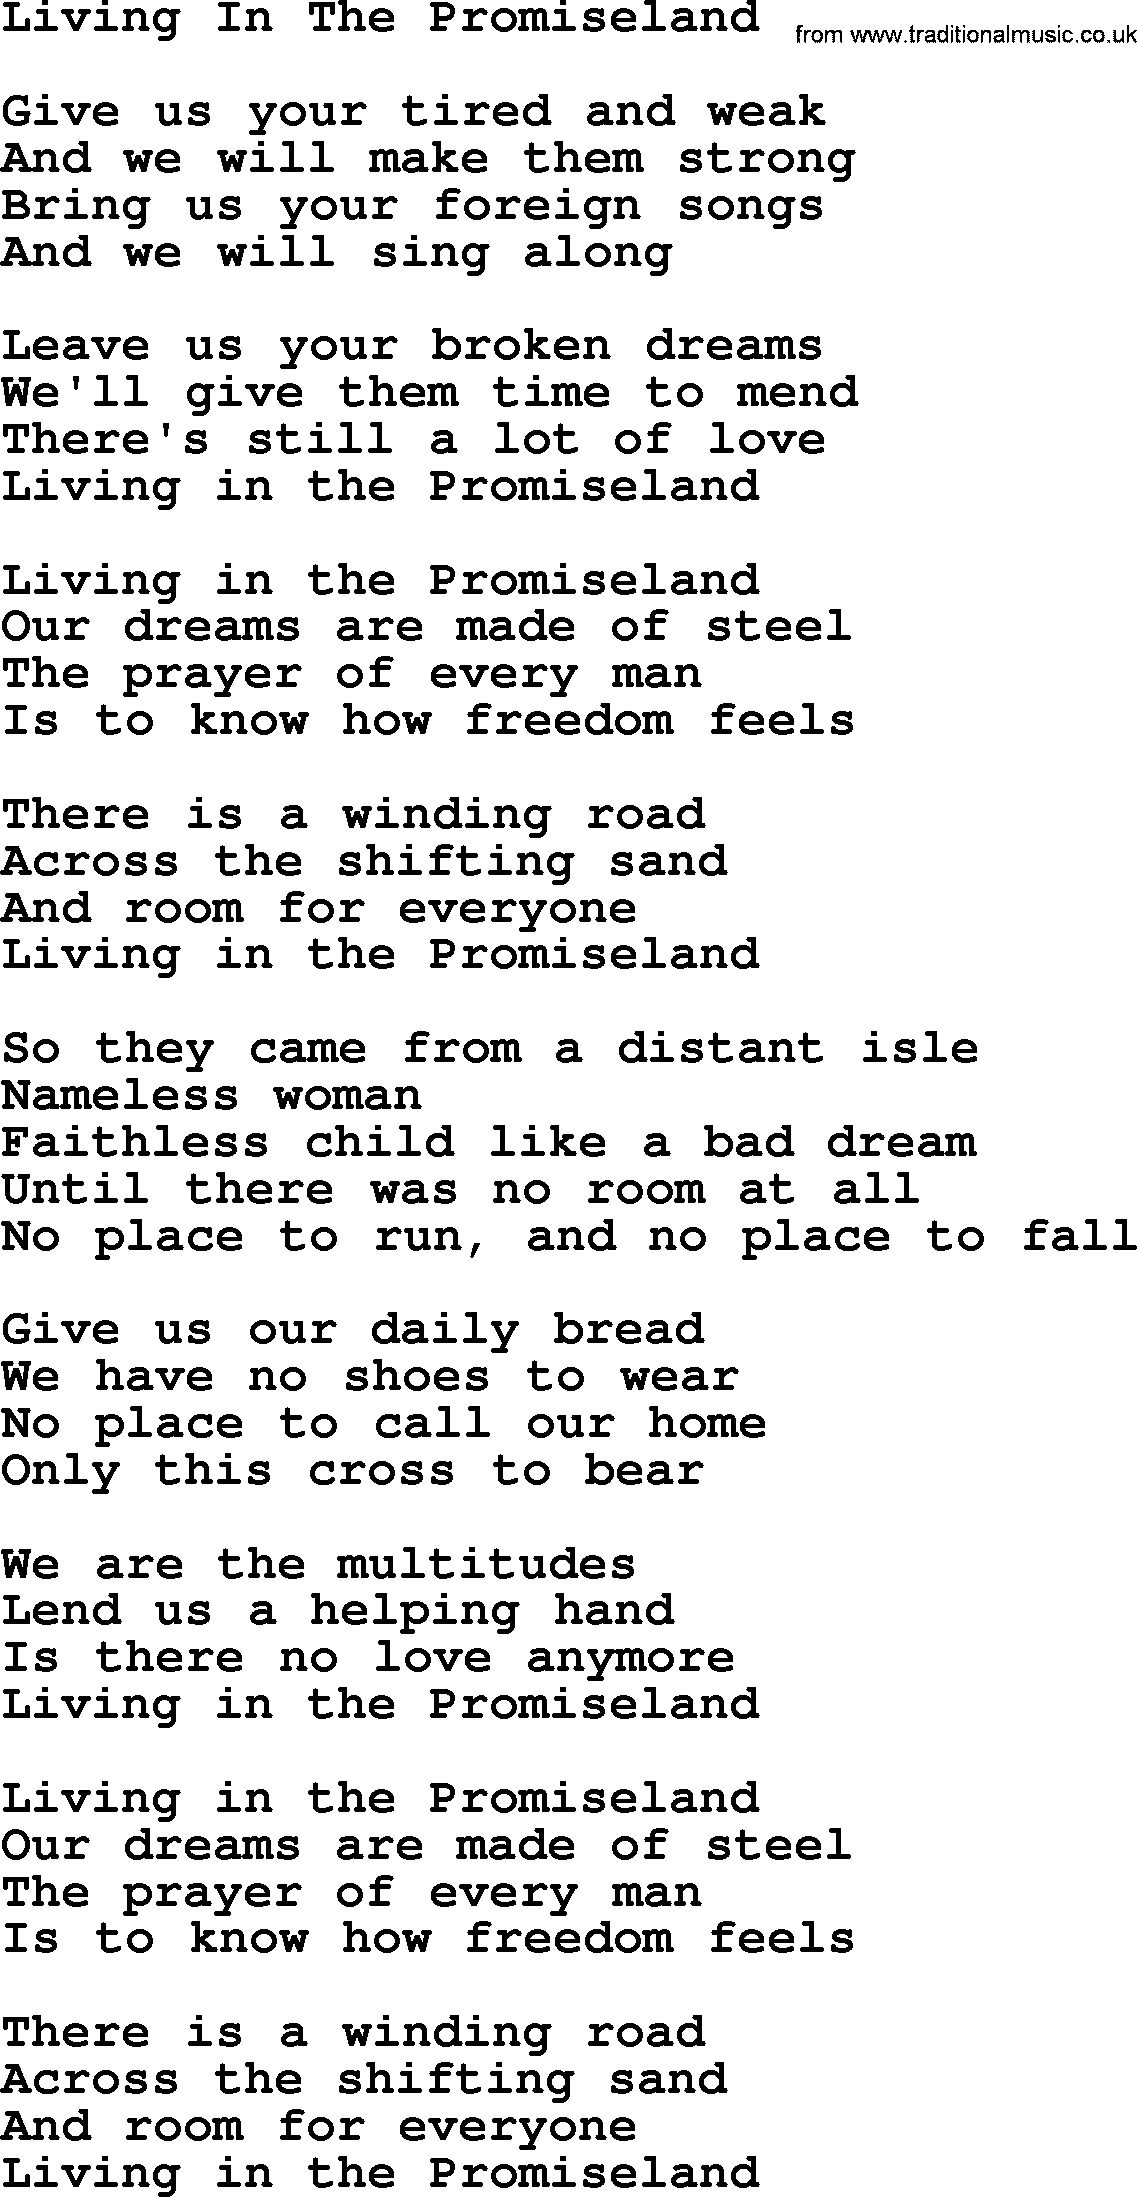 Willie nelson song living in the promise land lyrics willie nelson song living in the promise land lyrics hexwebz Gallery